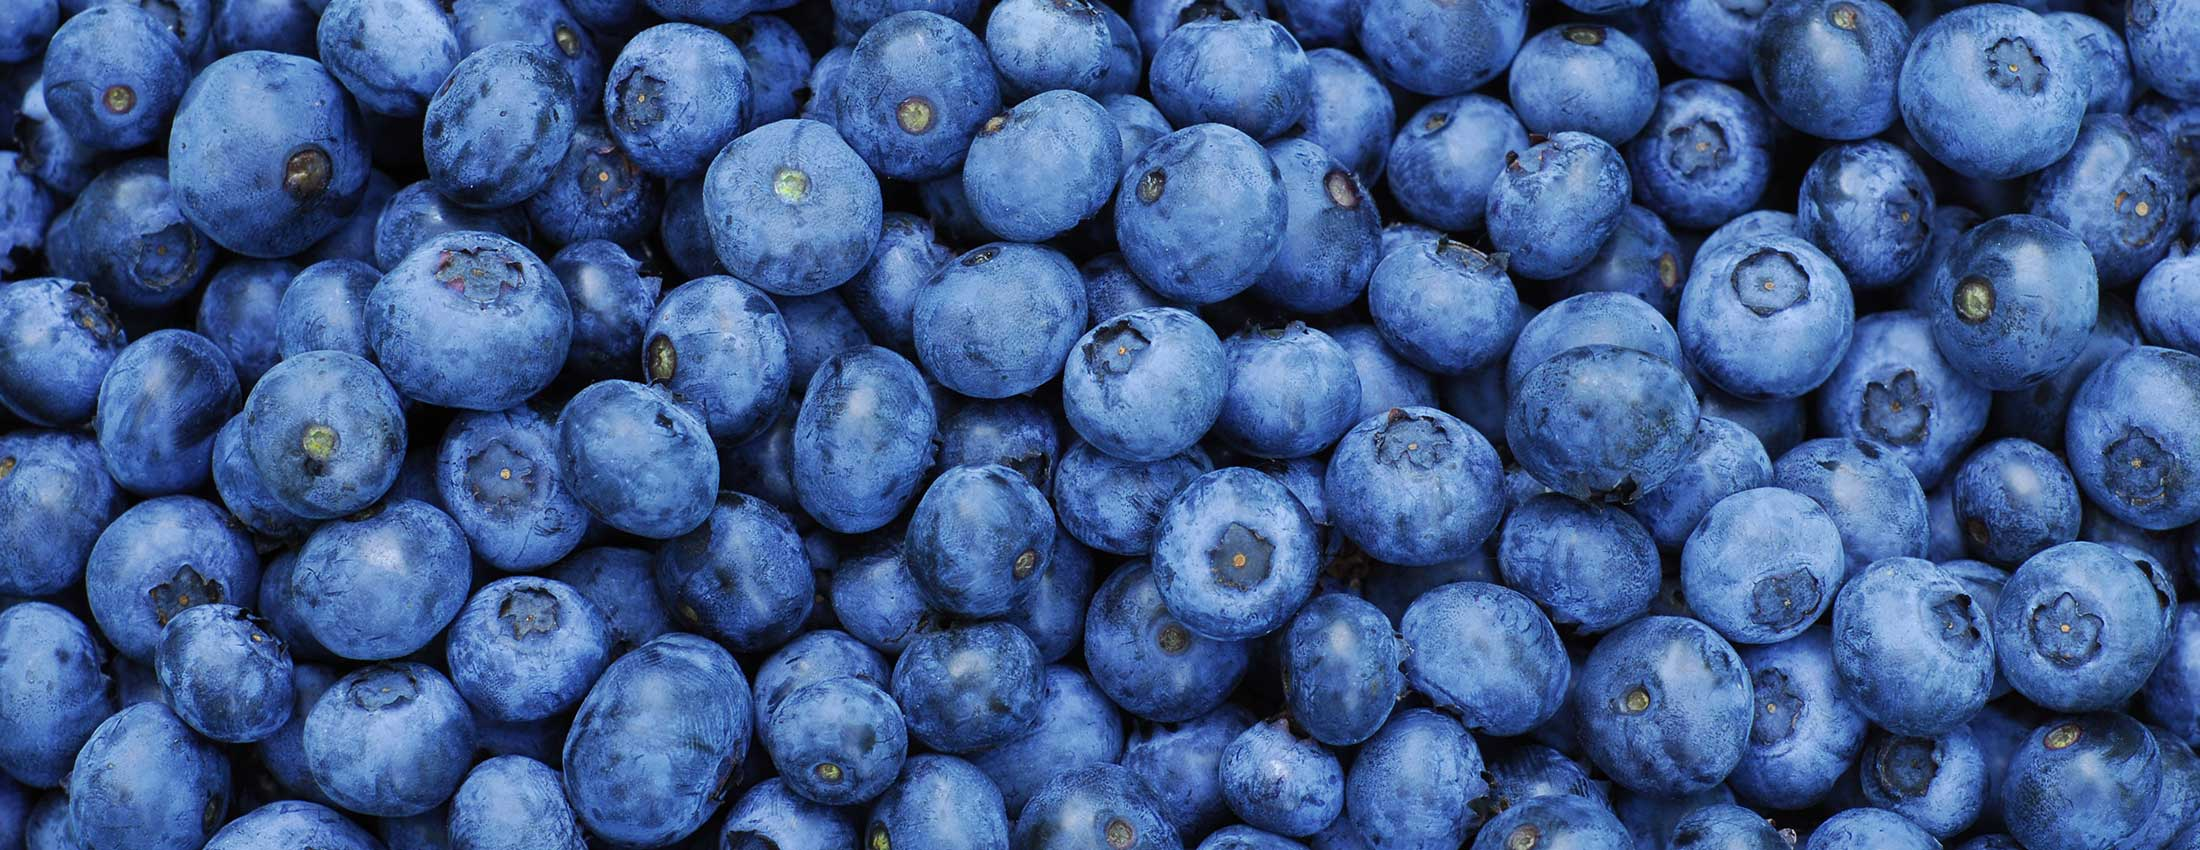 Biological Blueberries are World Beaters